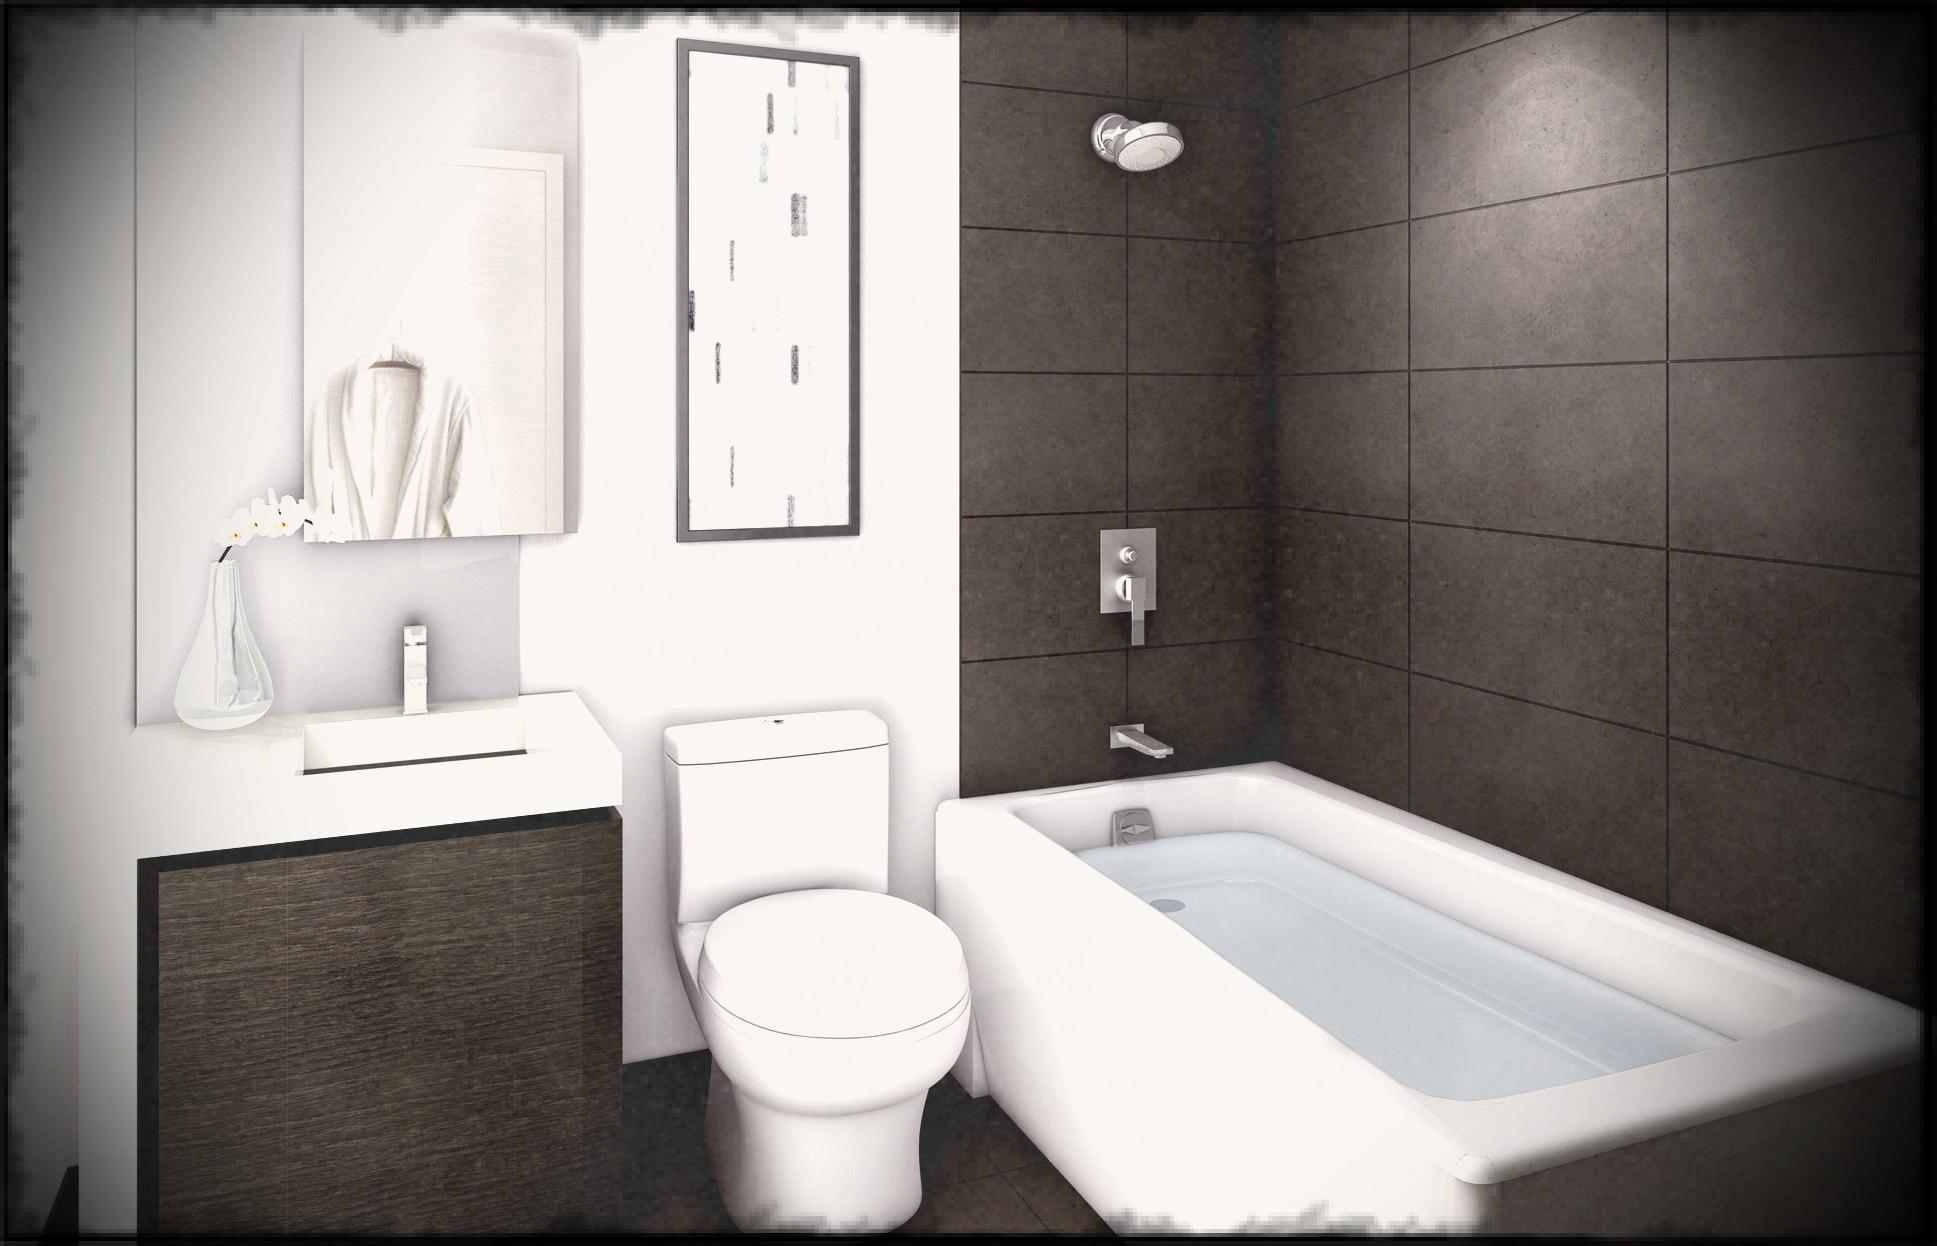 modern bathroom idea with white bathtup also toilet and white sink and